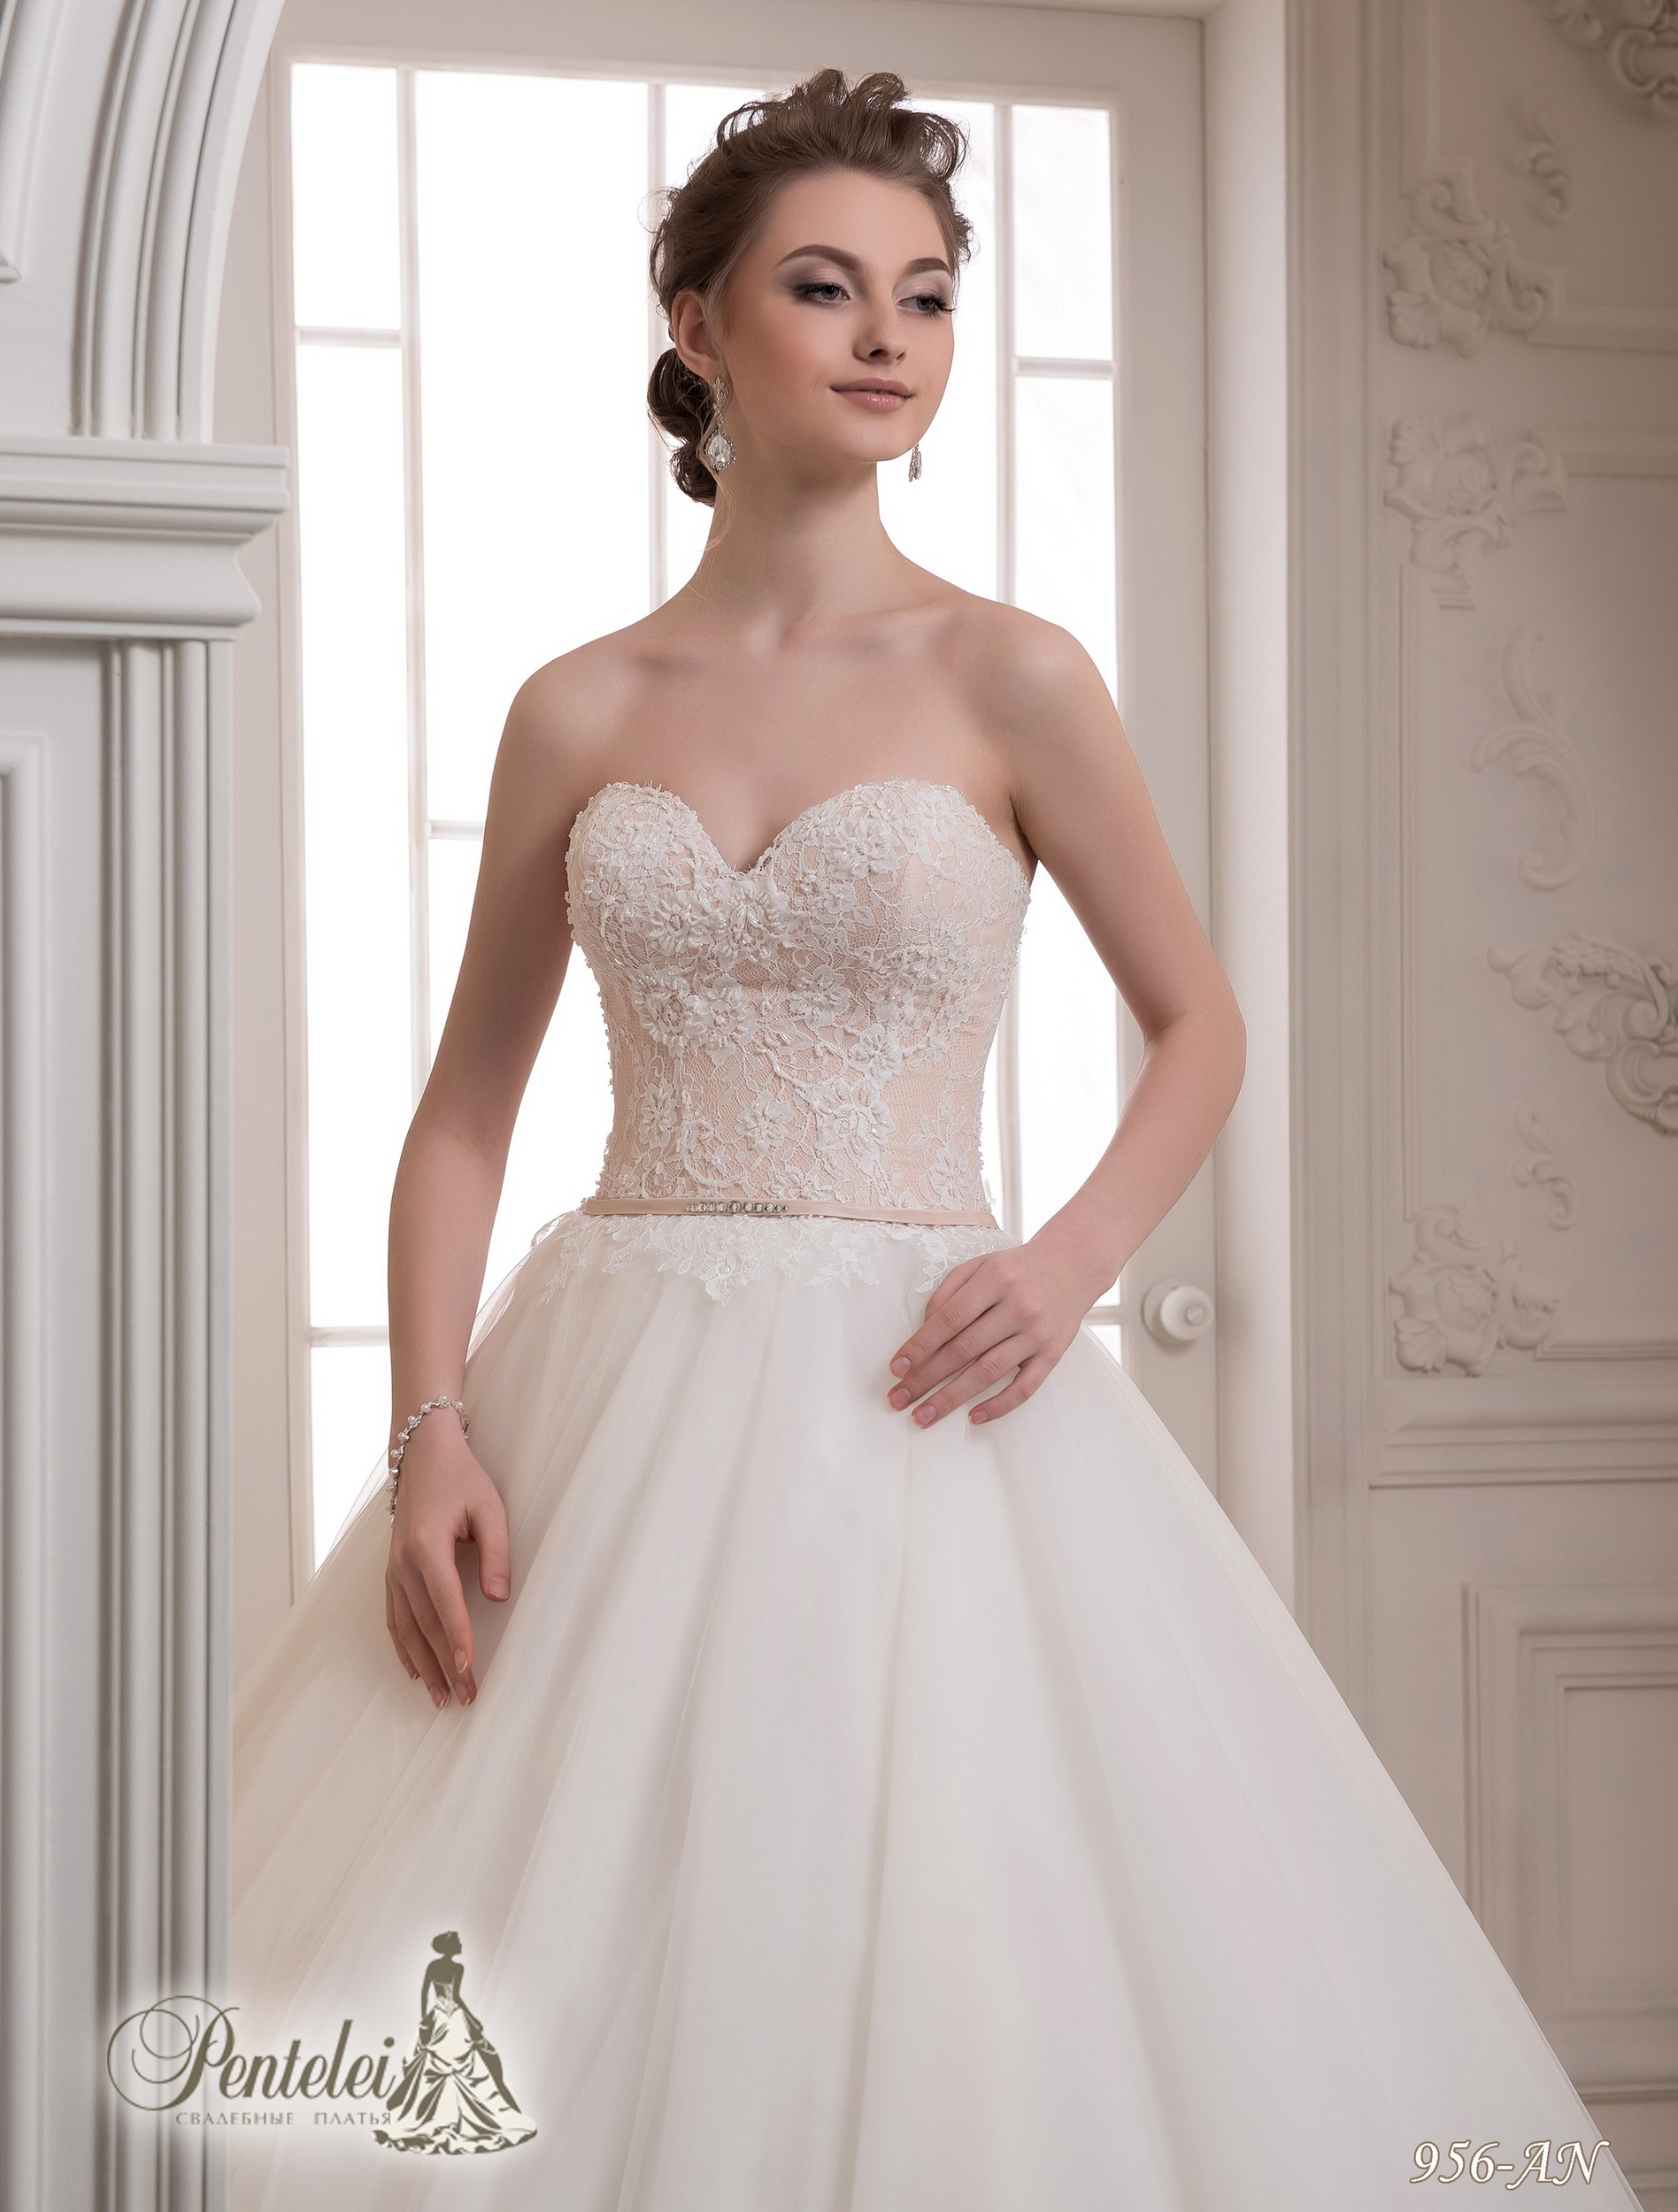 956-AN | Buy wedding dresses wholesale from Pentelei